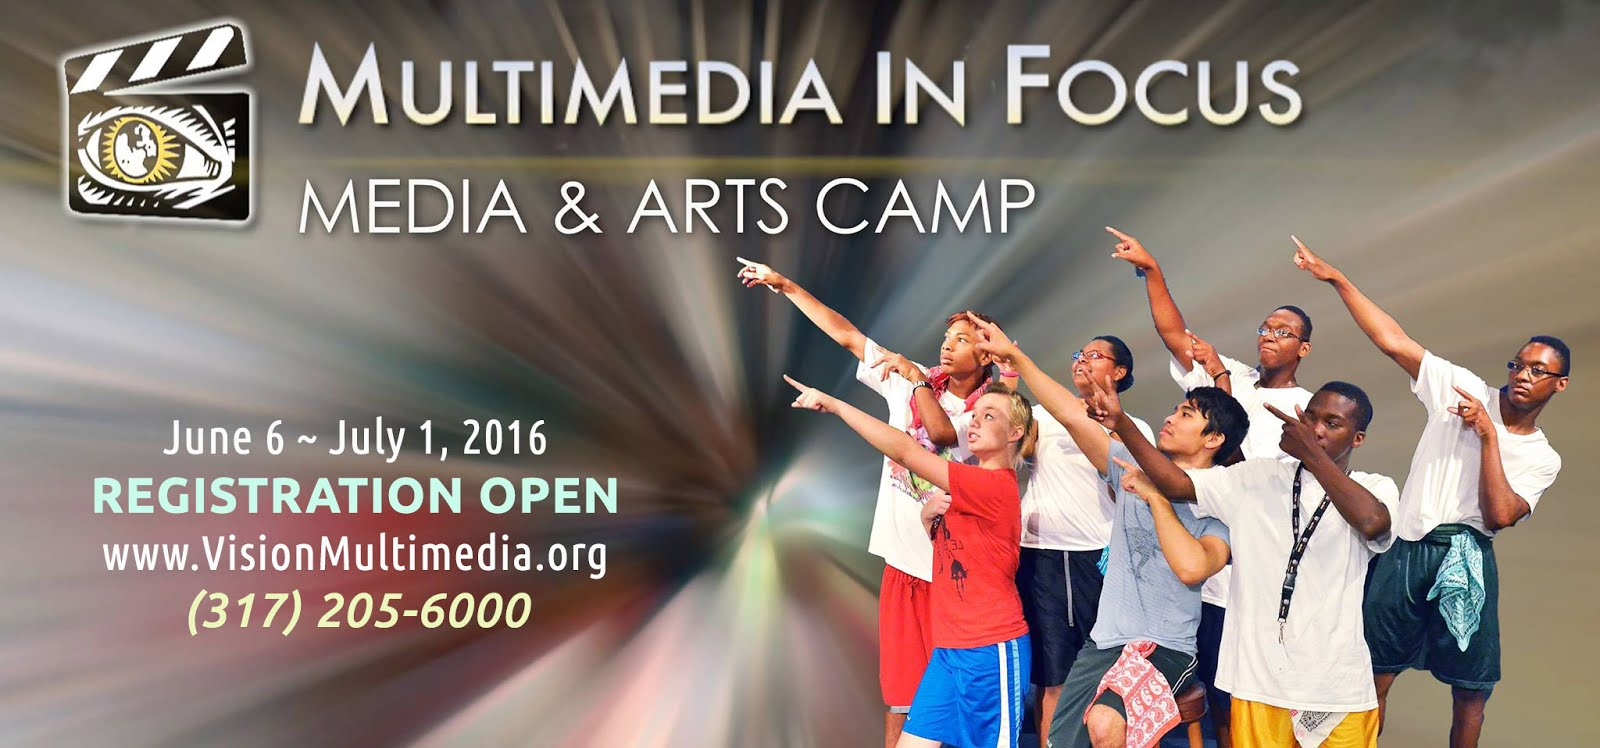 Multimedia In Focus Media Camp